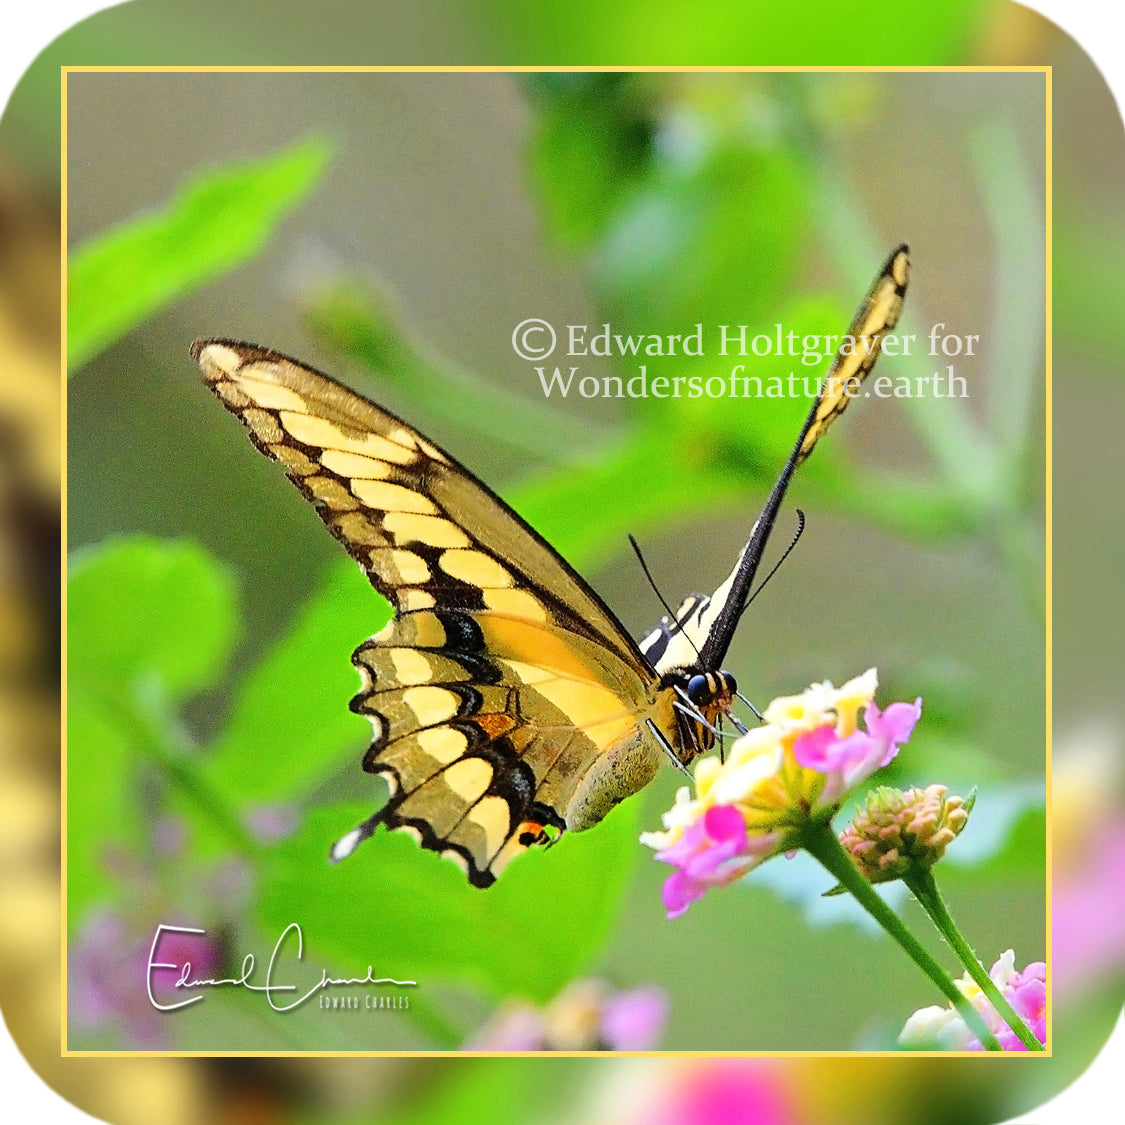 Butterflies - Giant Swallowtail